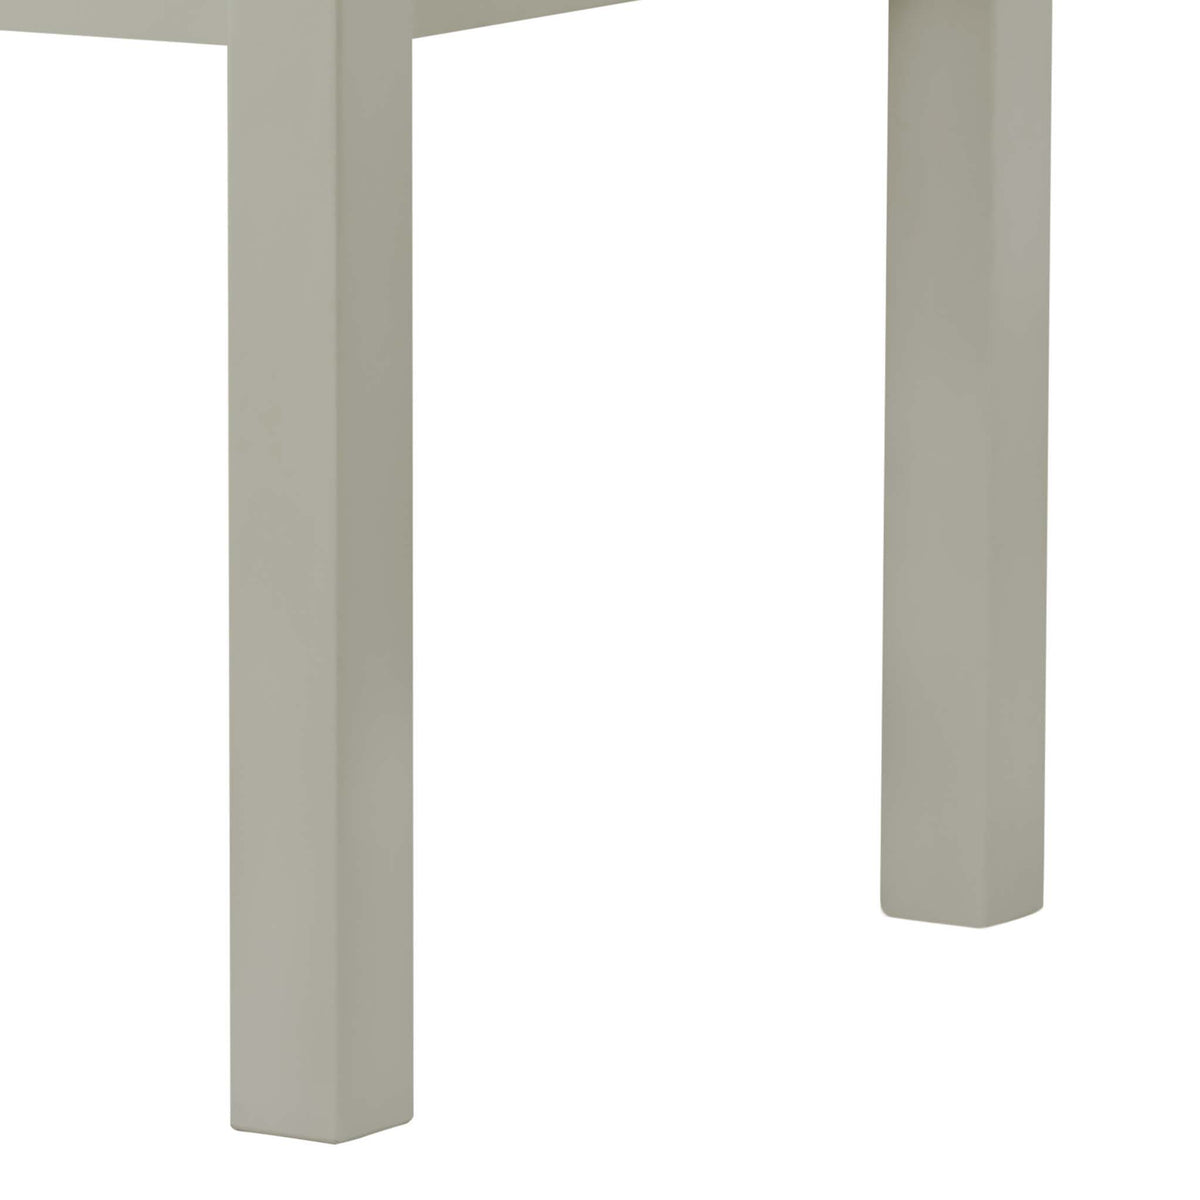 The Padstow Grey 120cm Wooden Dining Table - Part of the Dining Set - Close Up of Table Legs